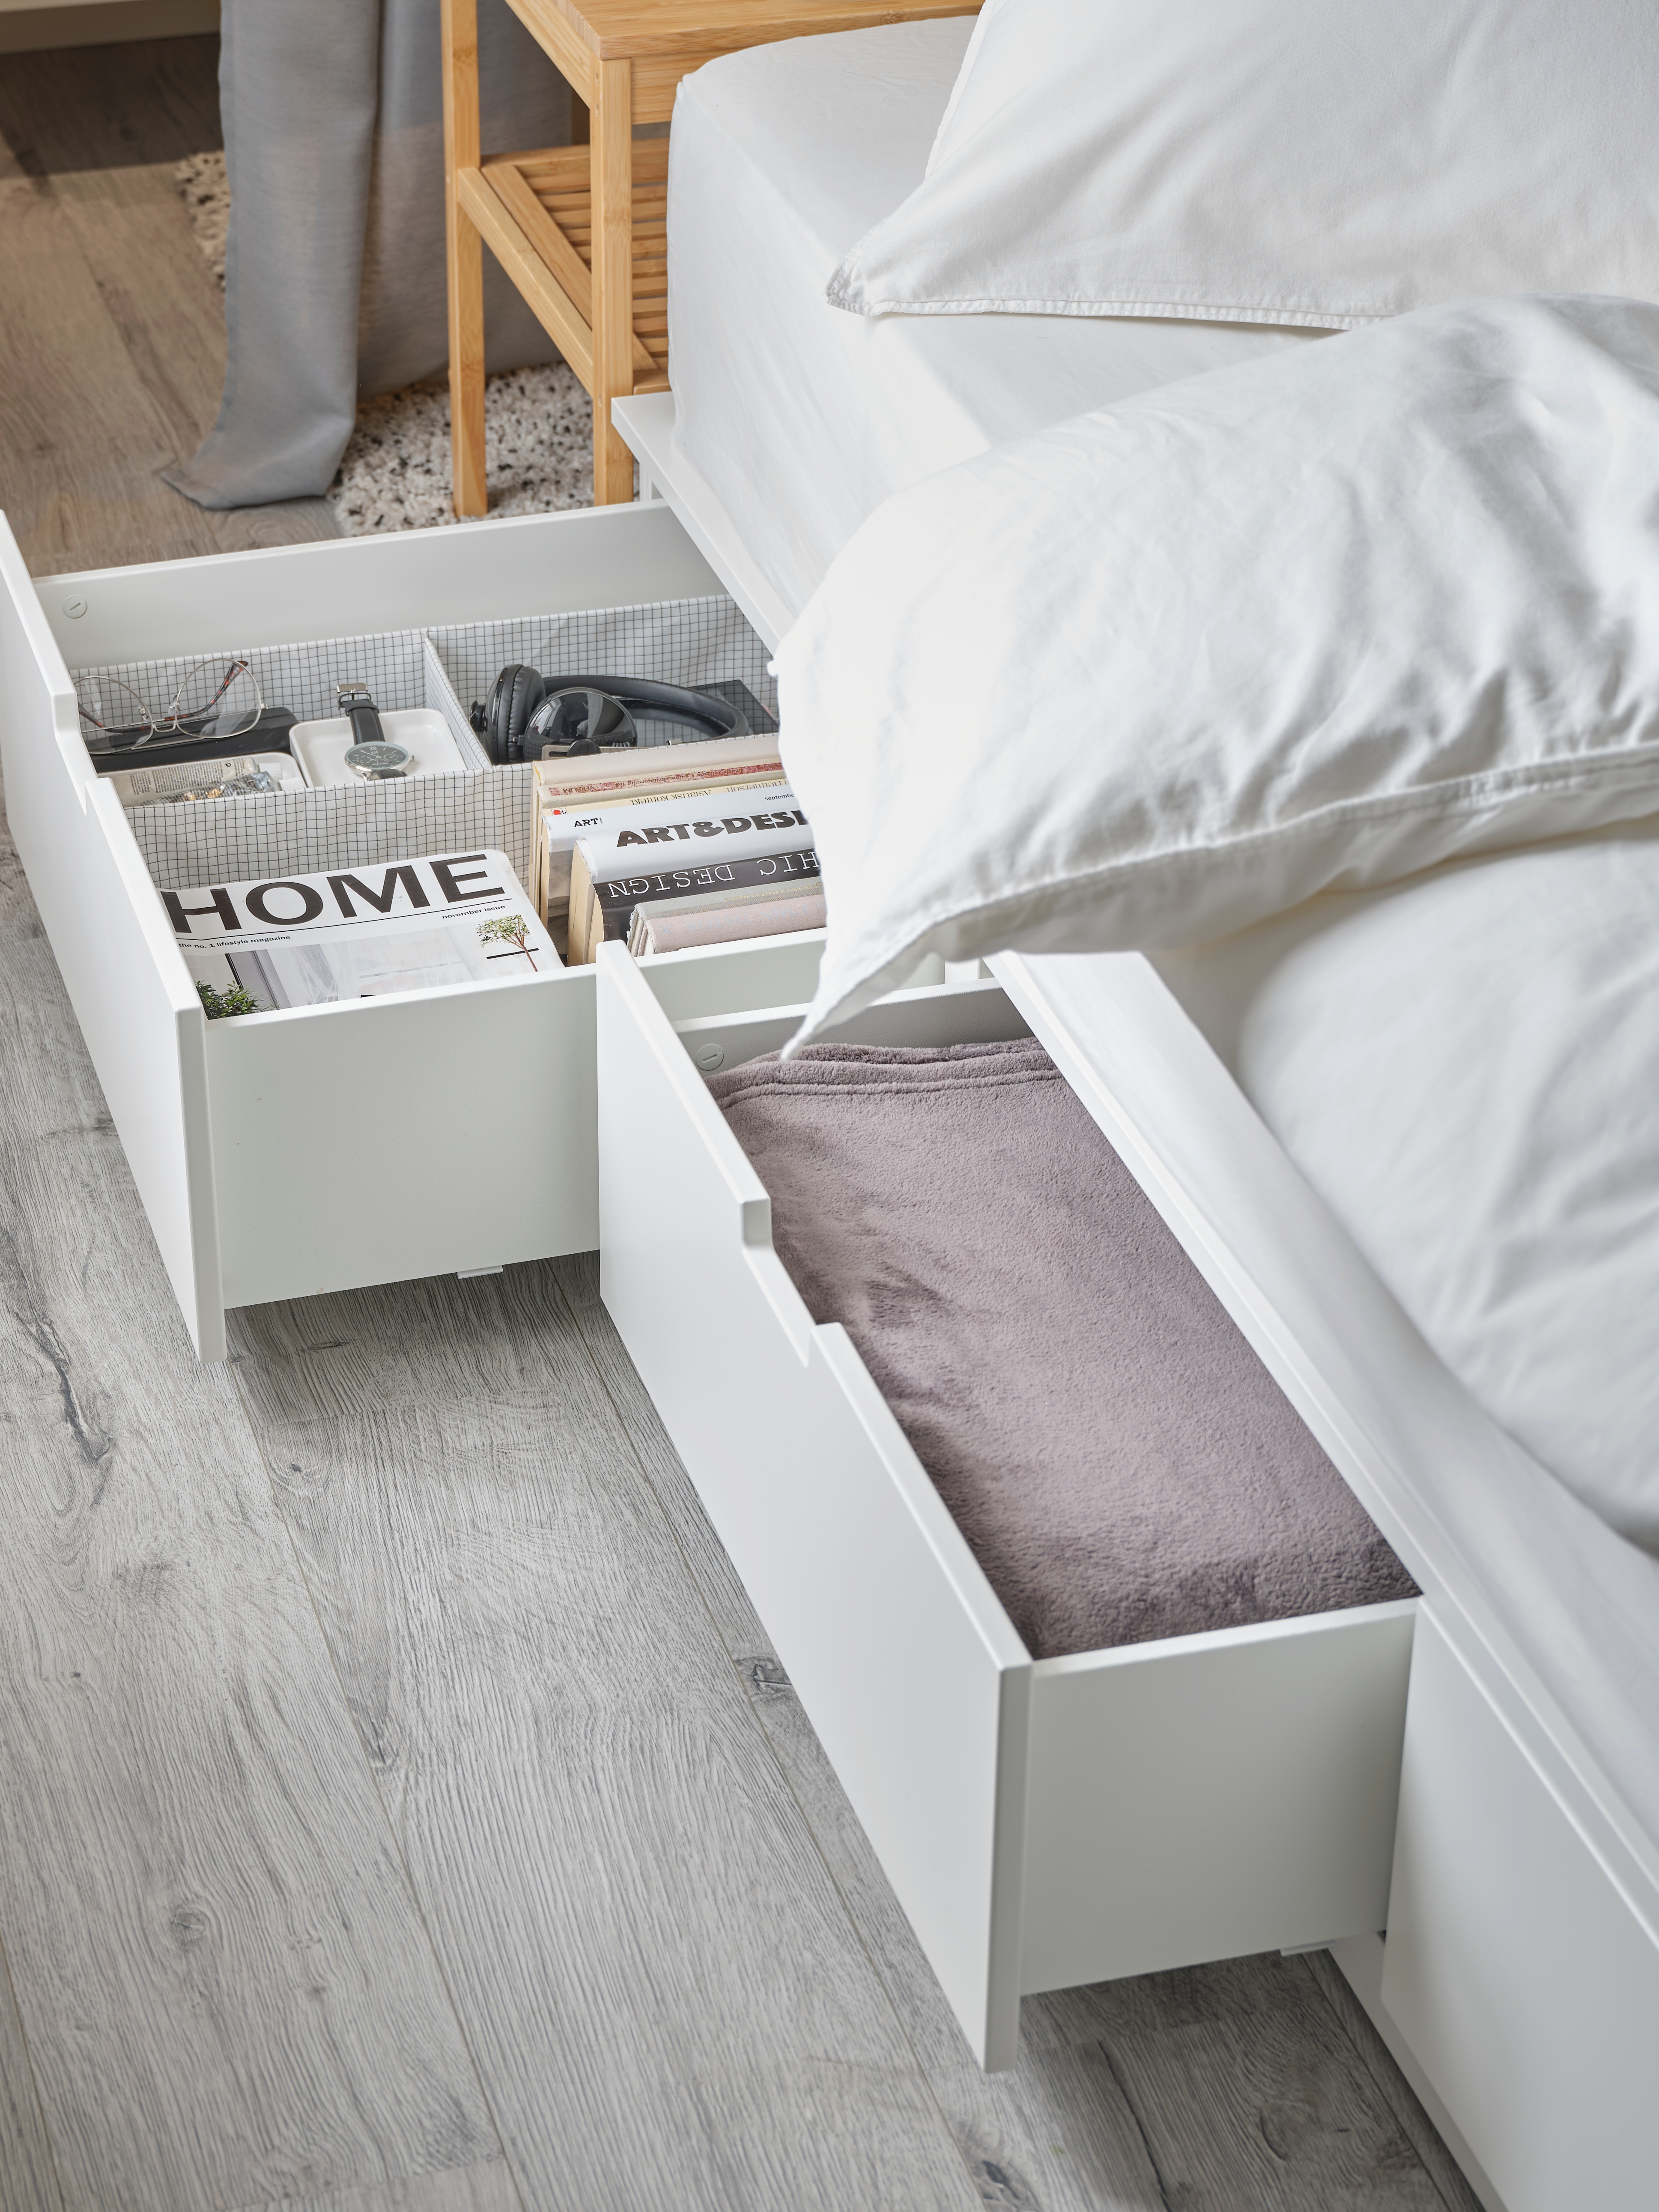 Modern bedroom featuring a bed frame with six drawers, two of each are open revealing a bedspread and magazines.